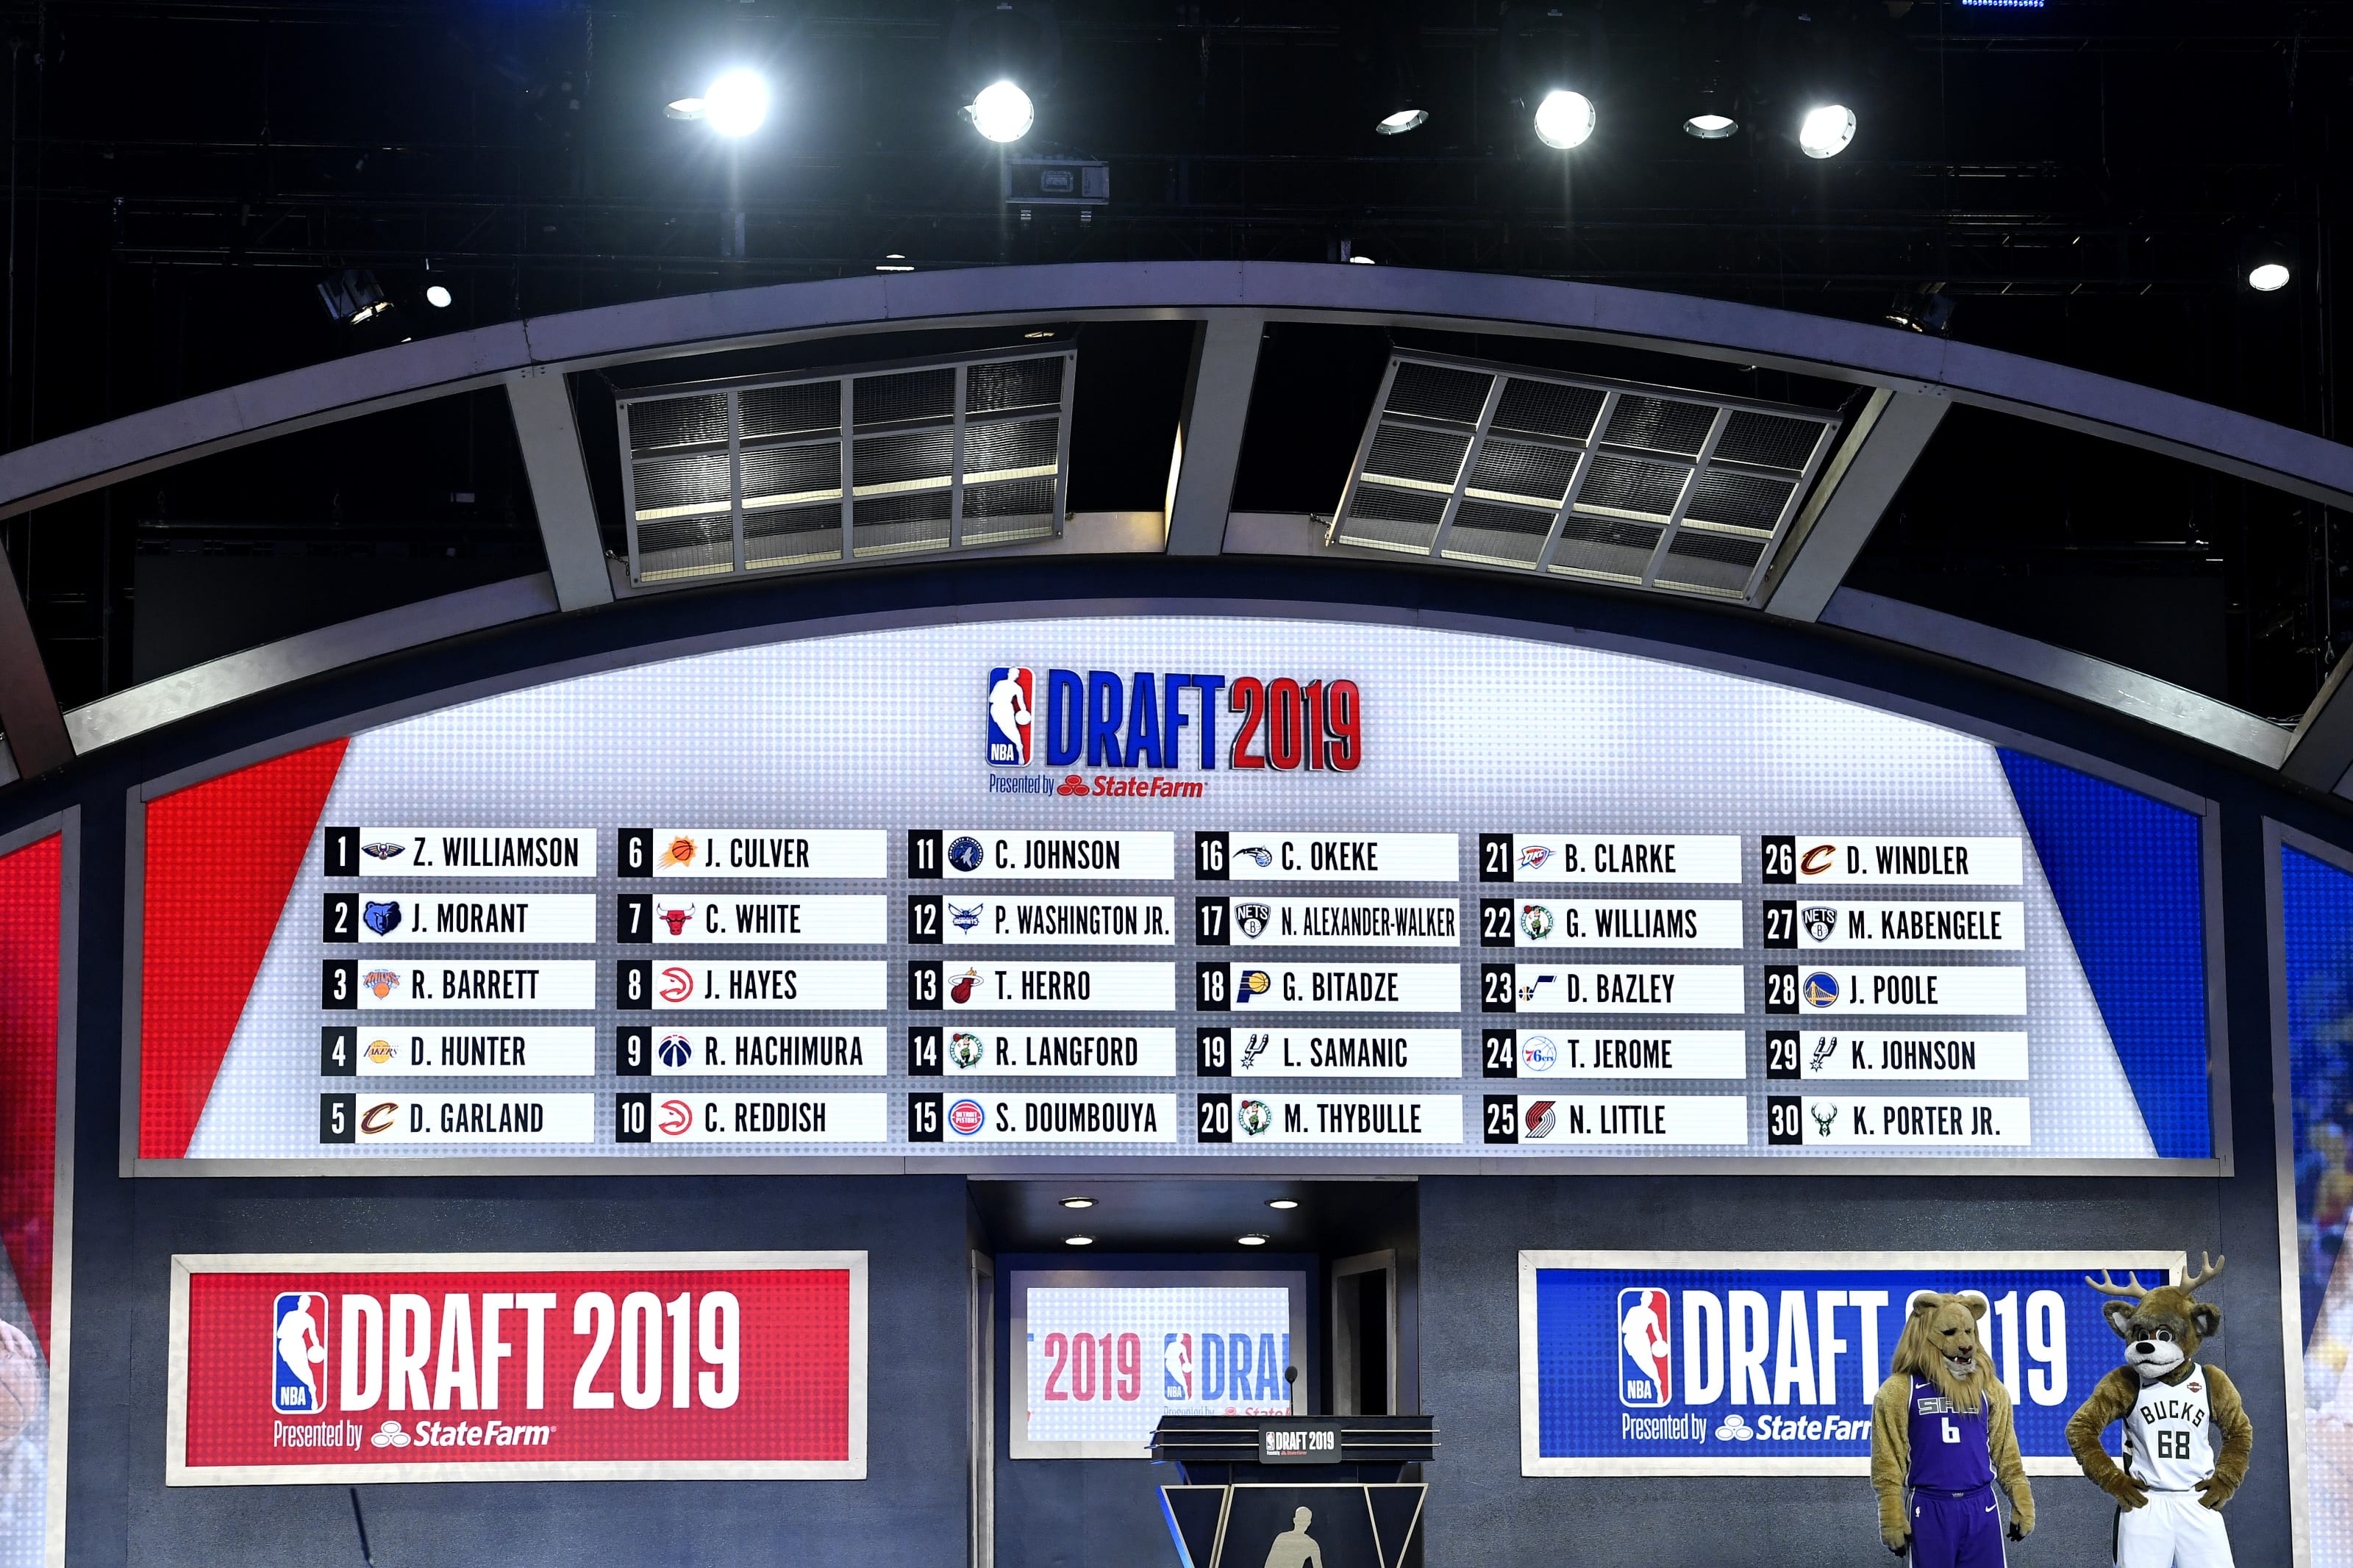 The first round draft board is seen during the 2019 NBA Draft at the Barclays Center. (Photo by Sarah Stier/Getty Images)